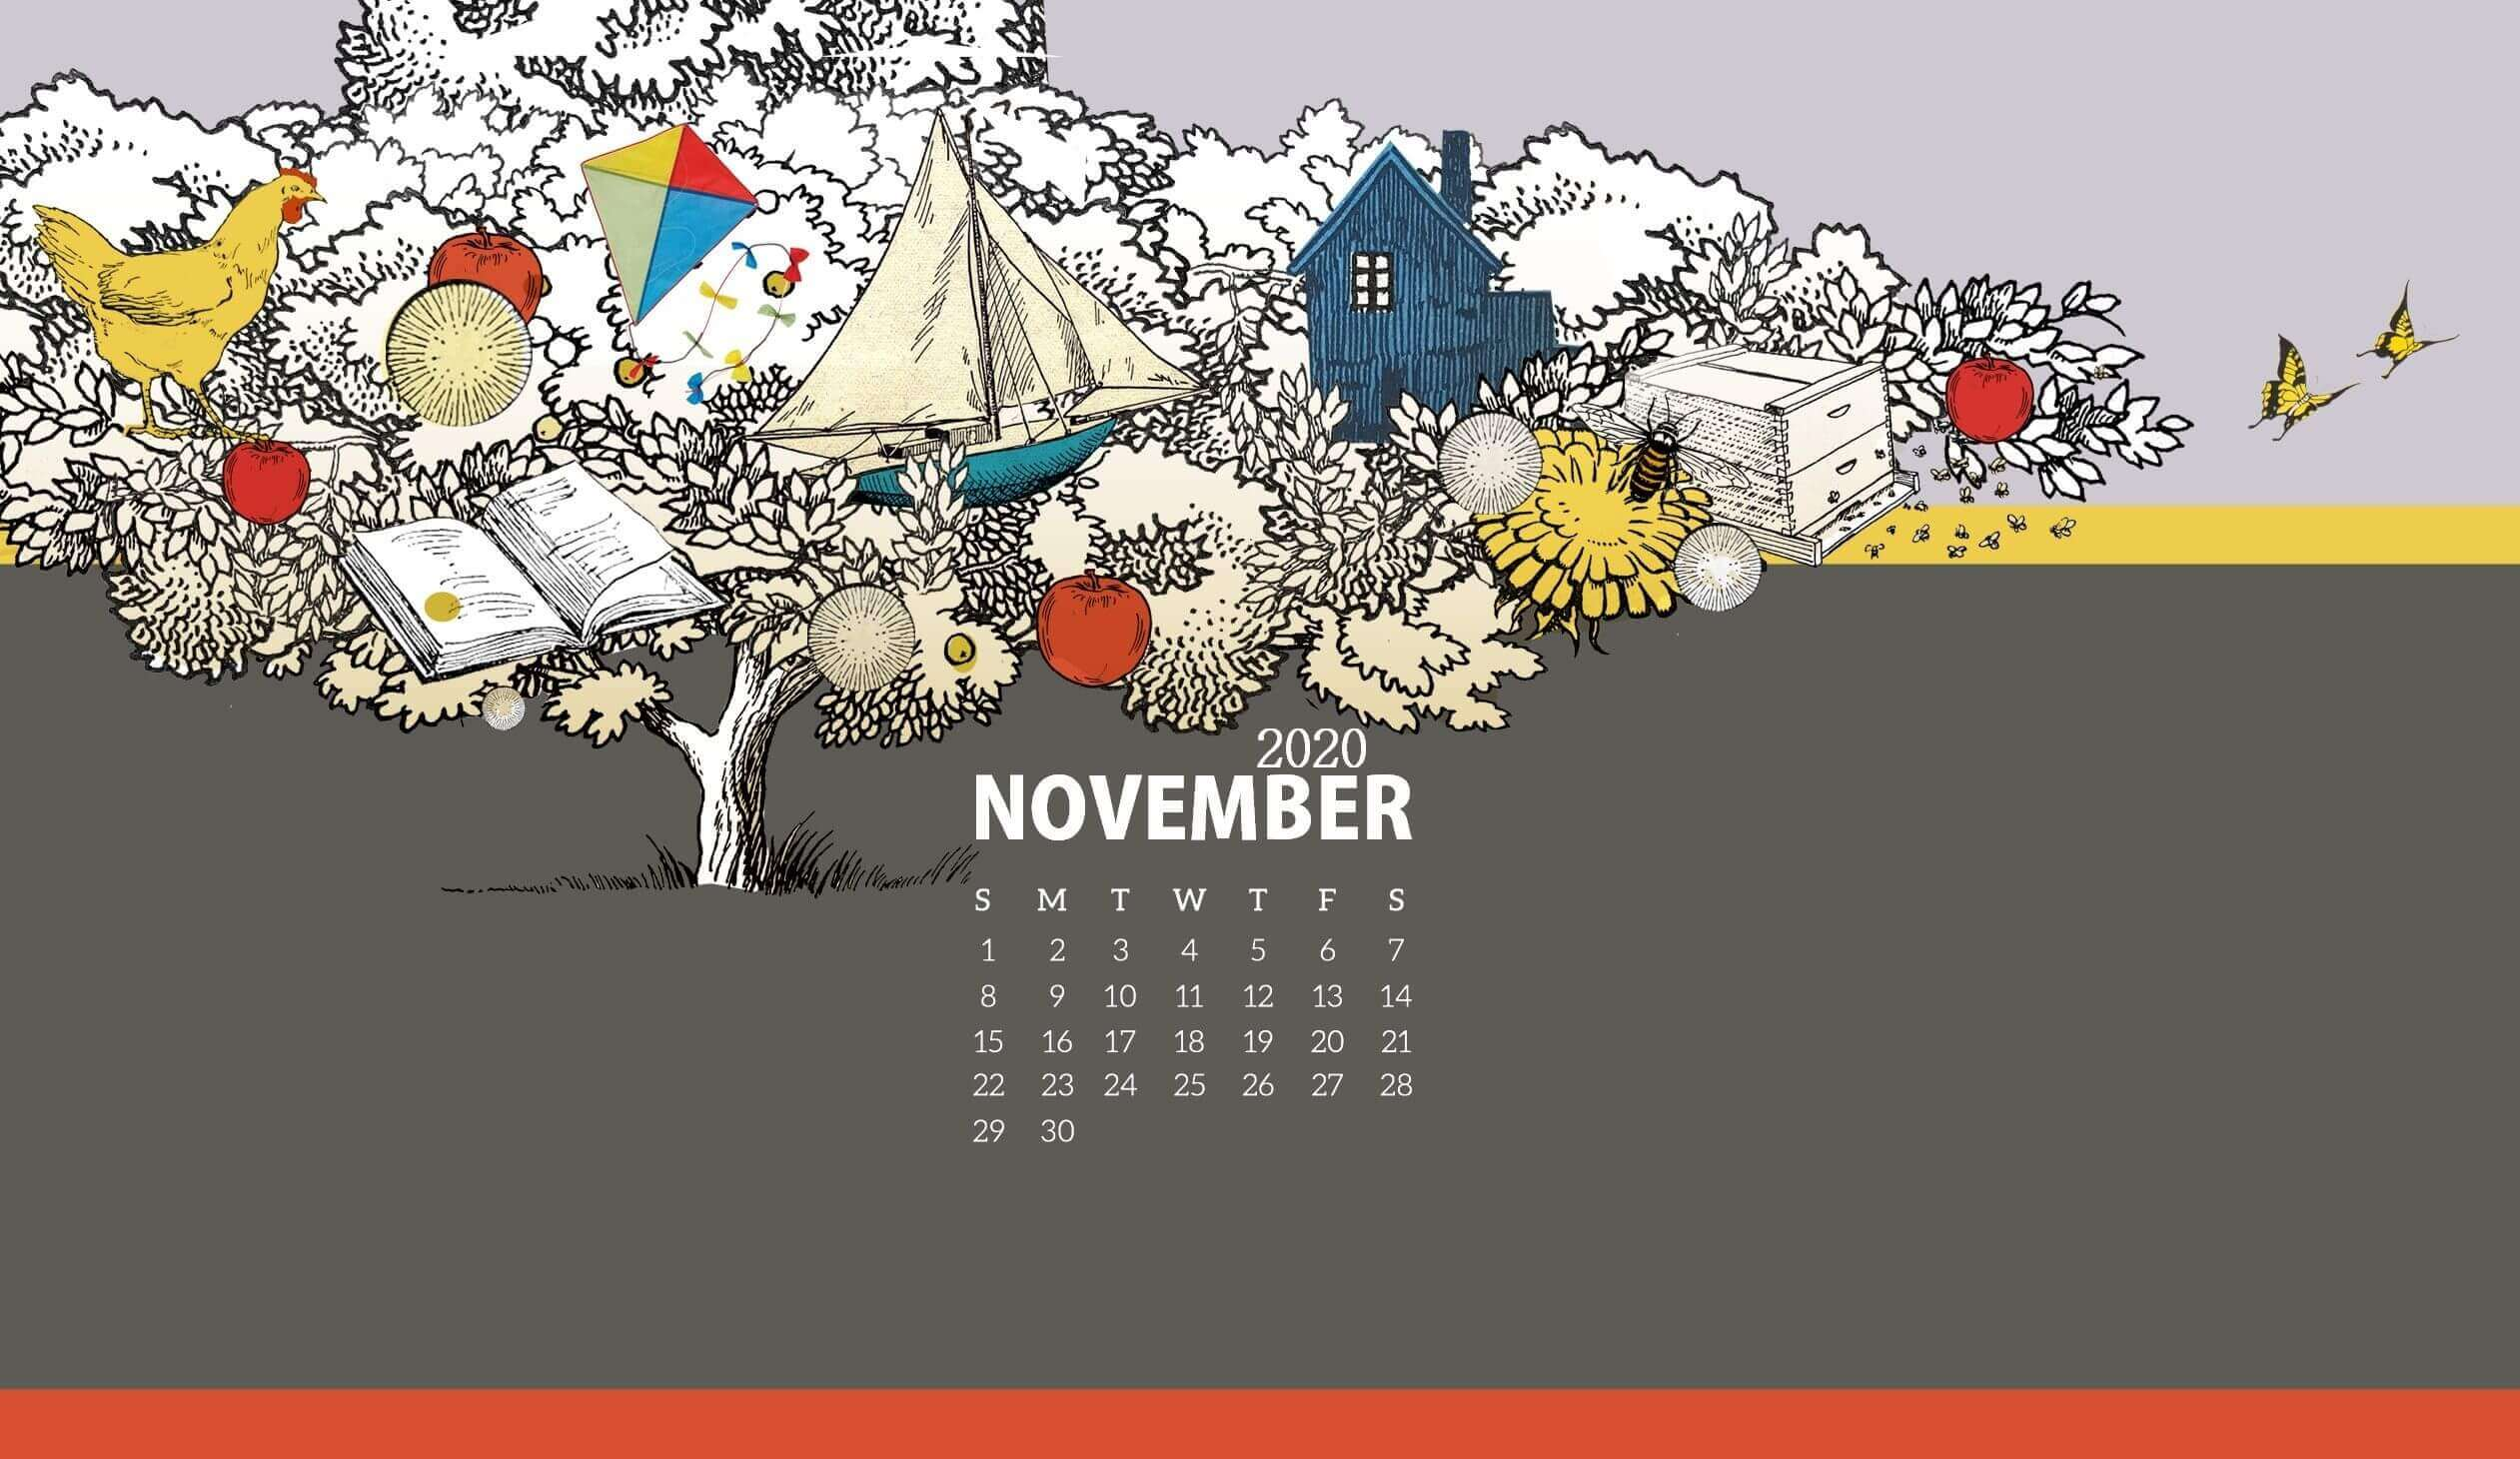 November 2020 Calendar Wallpaper for Desktop